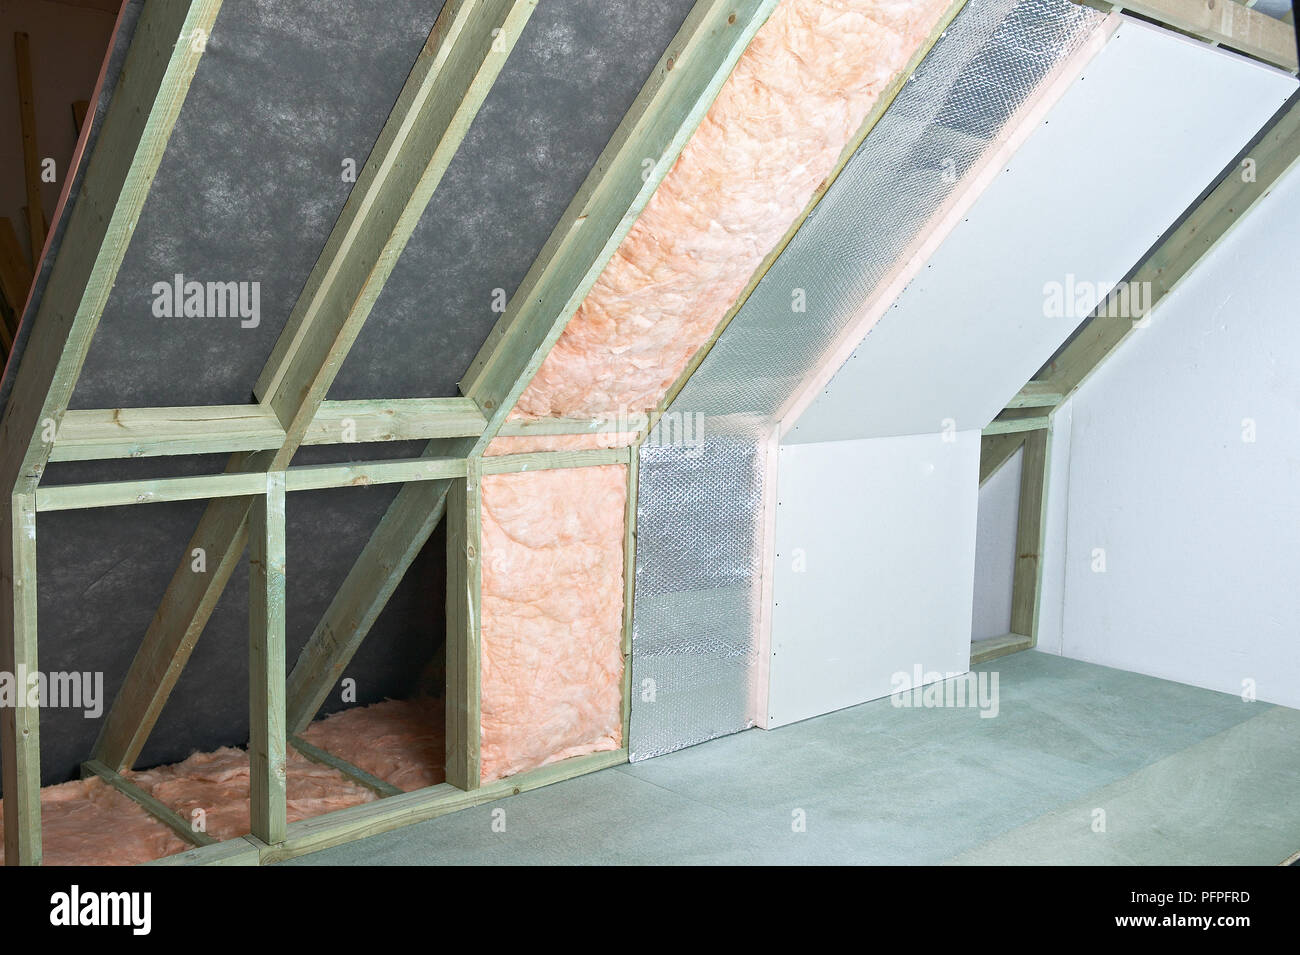 Foil Insulation Blanket Blanket Insulation Framefoil And Thermal Check Plasterboard Stock